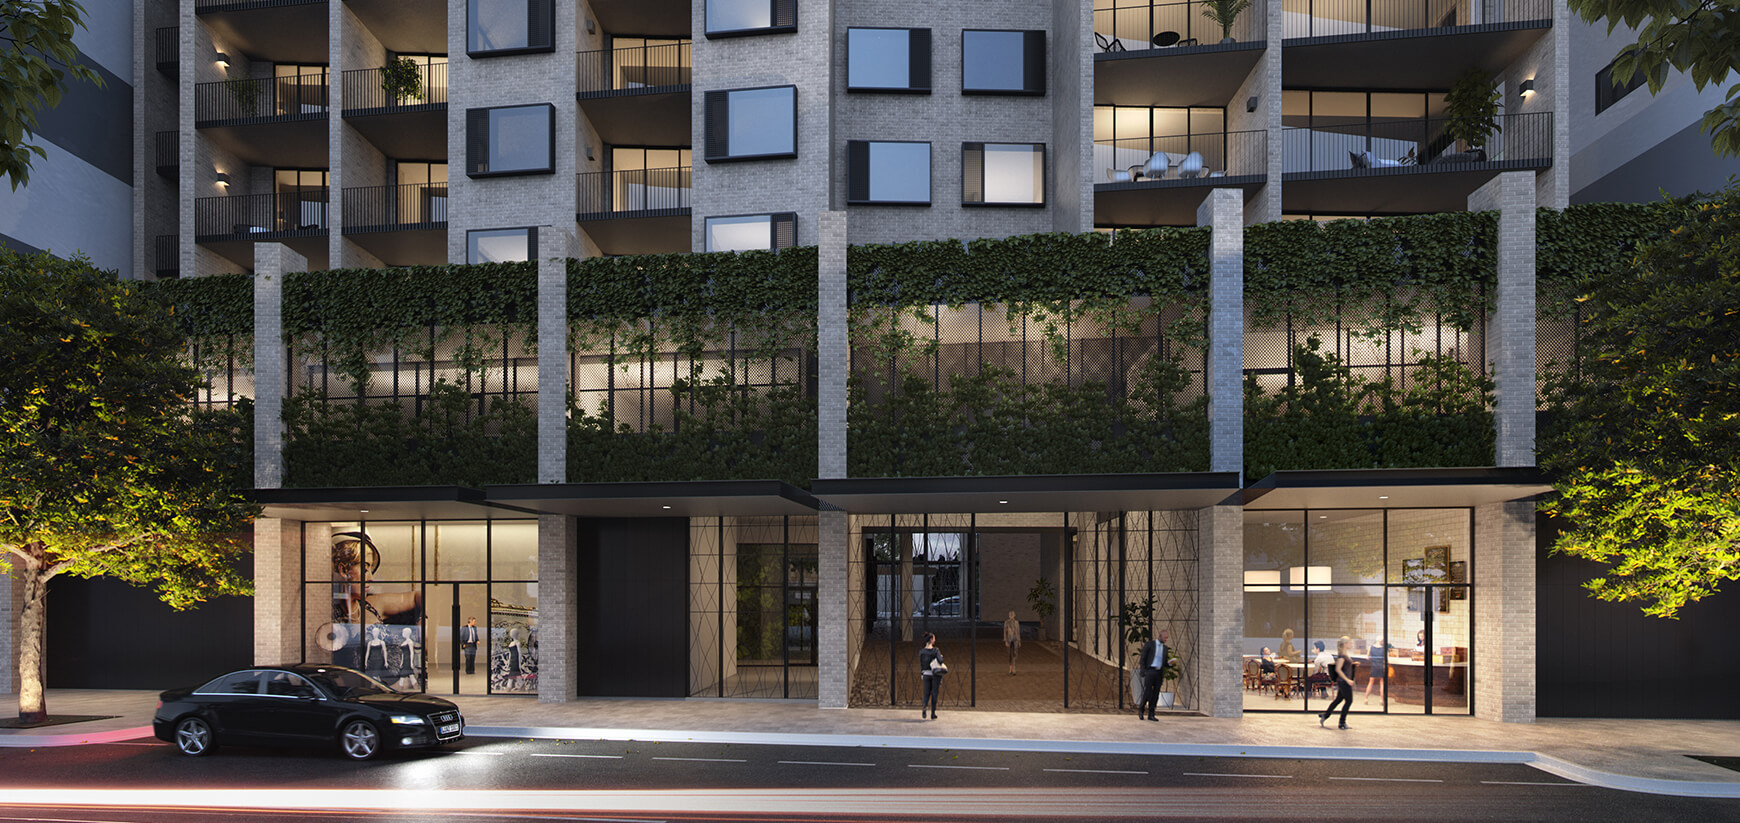 Ground level external CGI of Whitton Lane showing the retail and cafe spaces